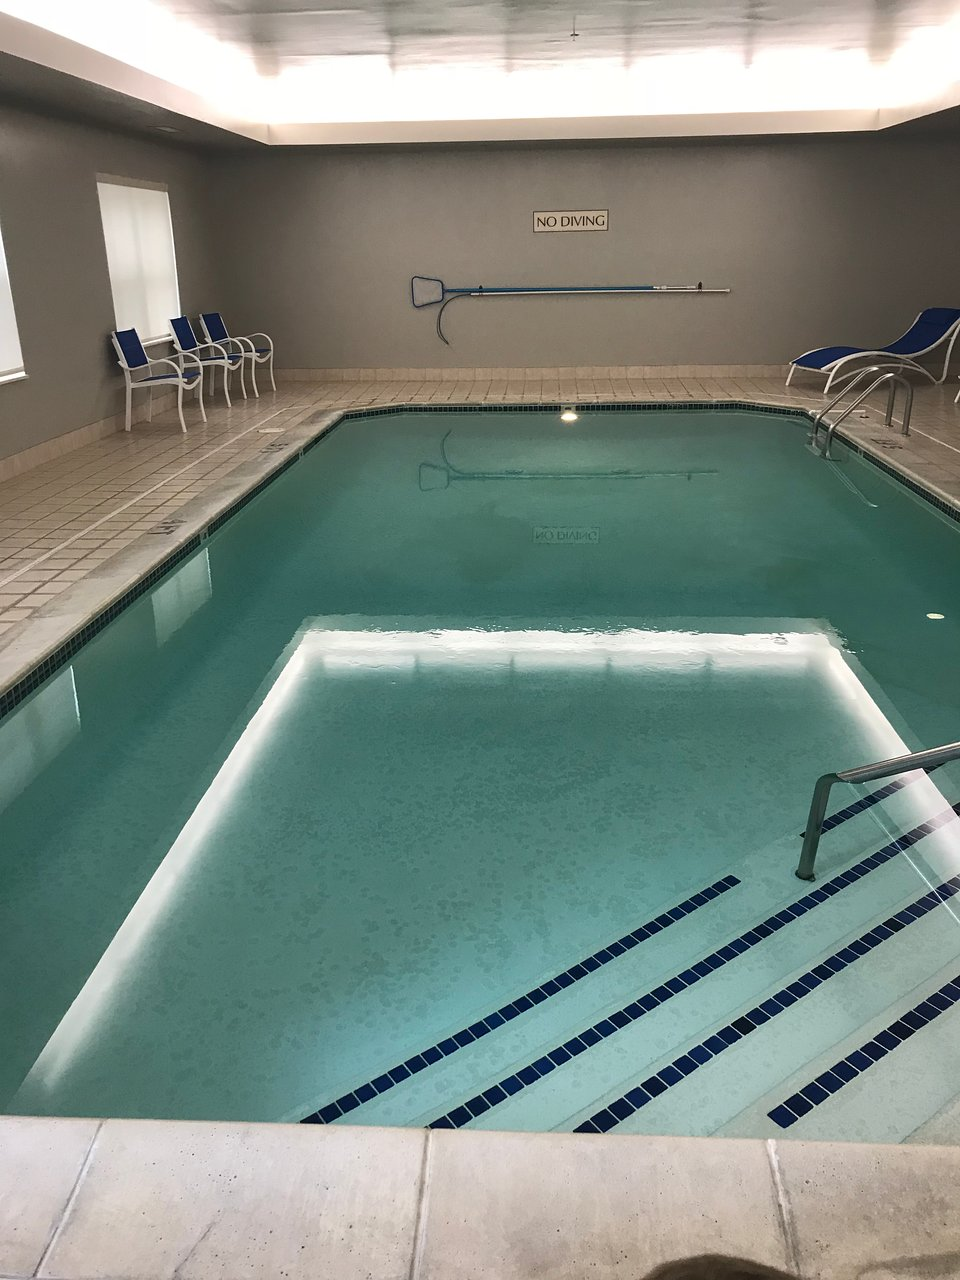 RESIDENCE INN BY MARRIOTT PORTSMOUTH - Updated 2018 Prices & Hotel ...